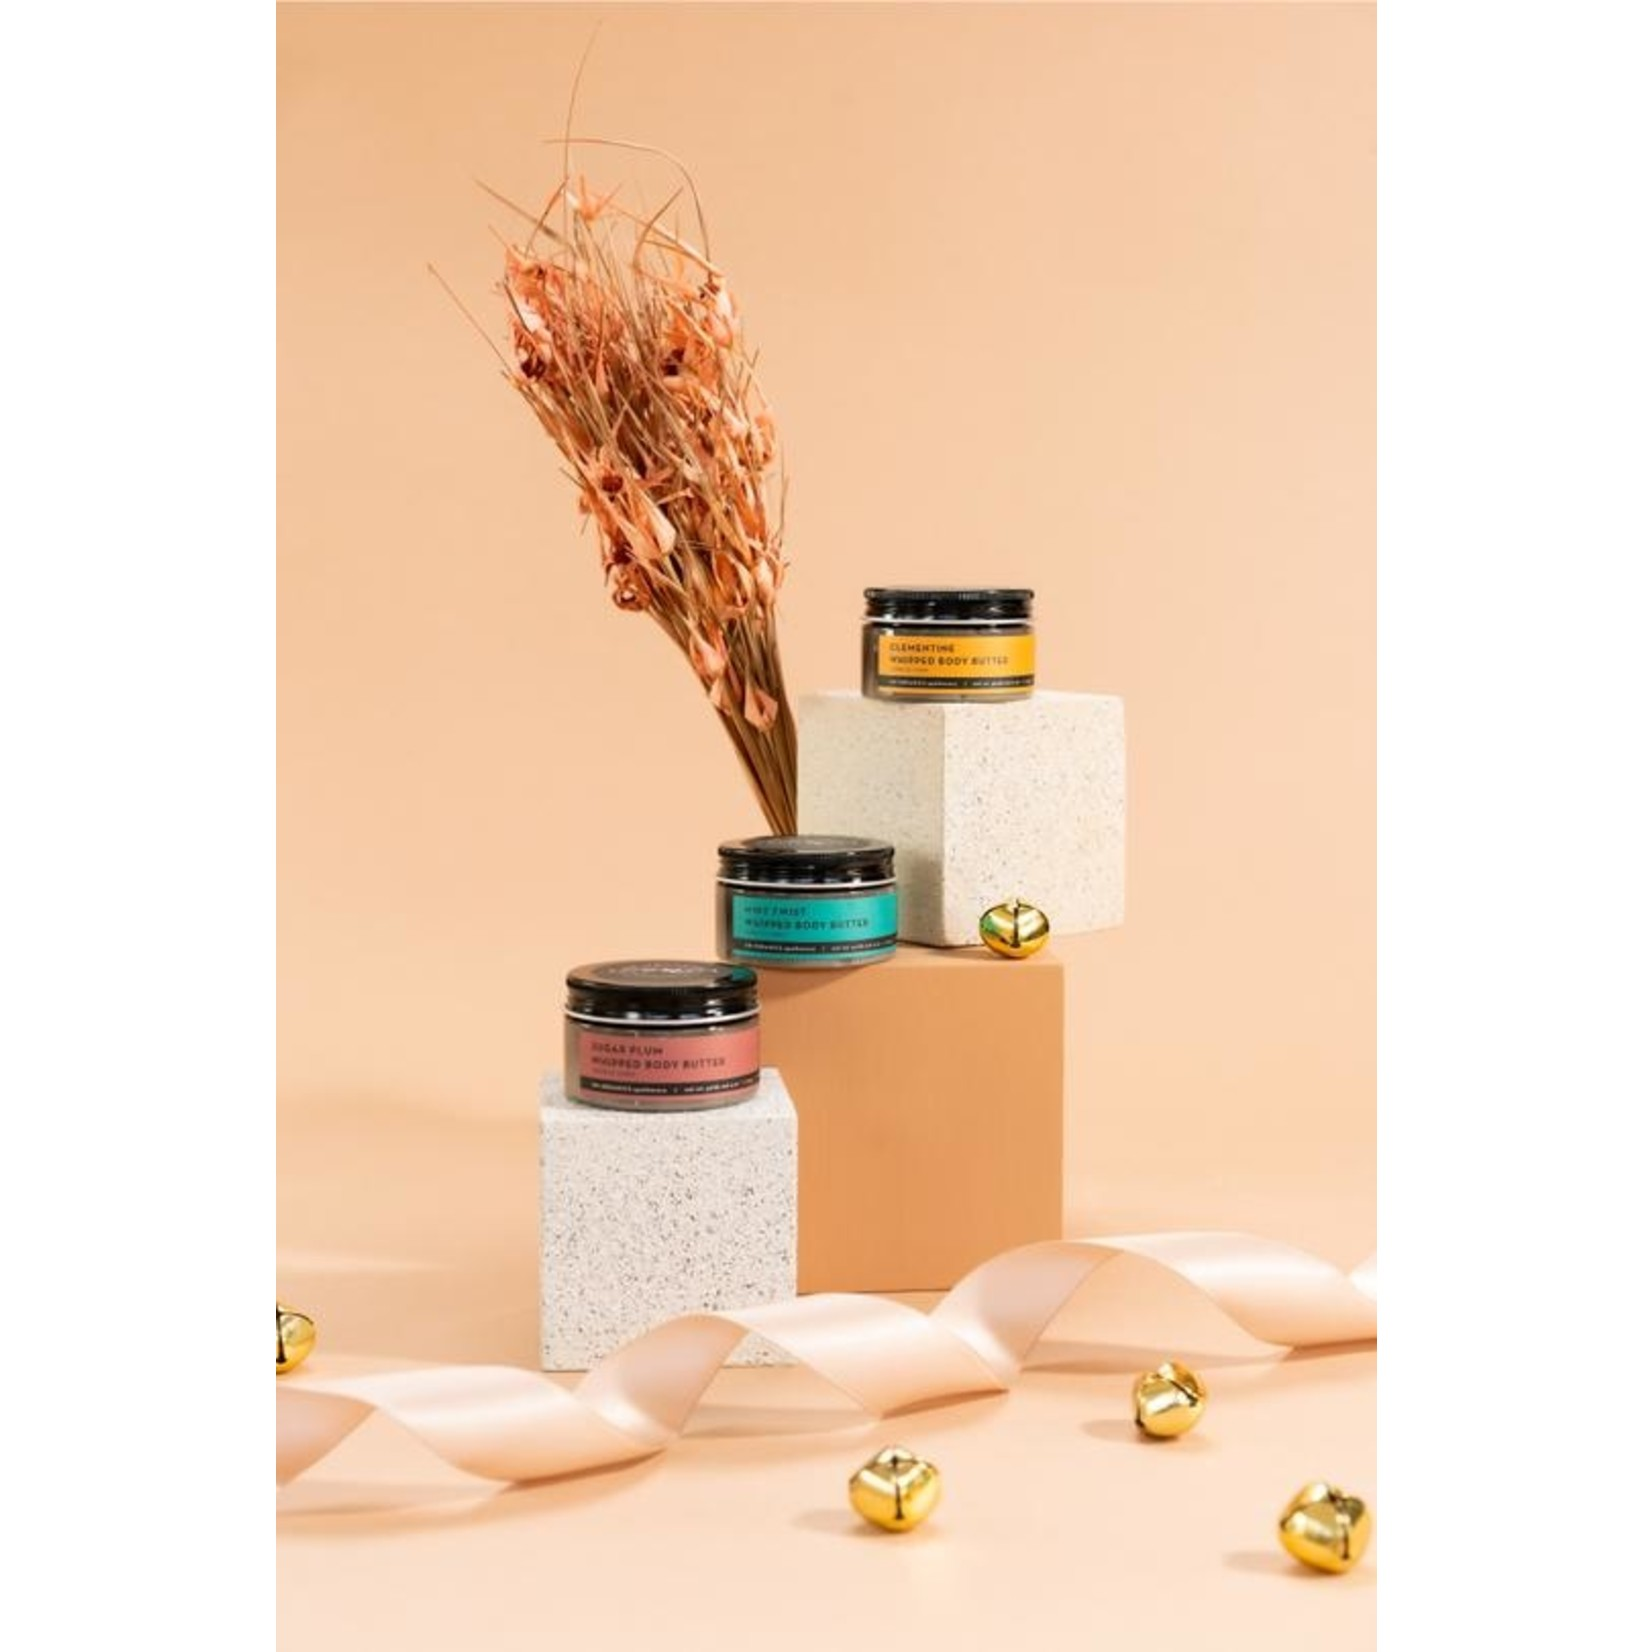 OM ORGANICS HOLIDAY WHIPPED BODY BUTTER